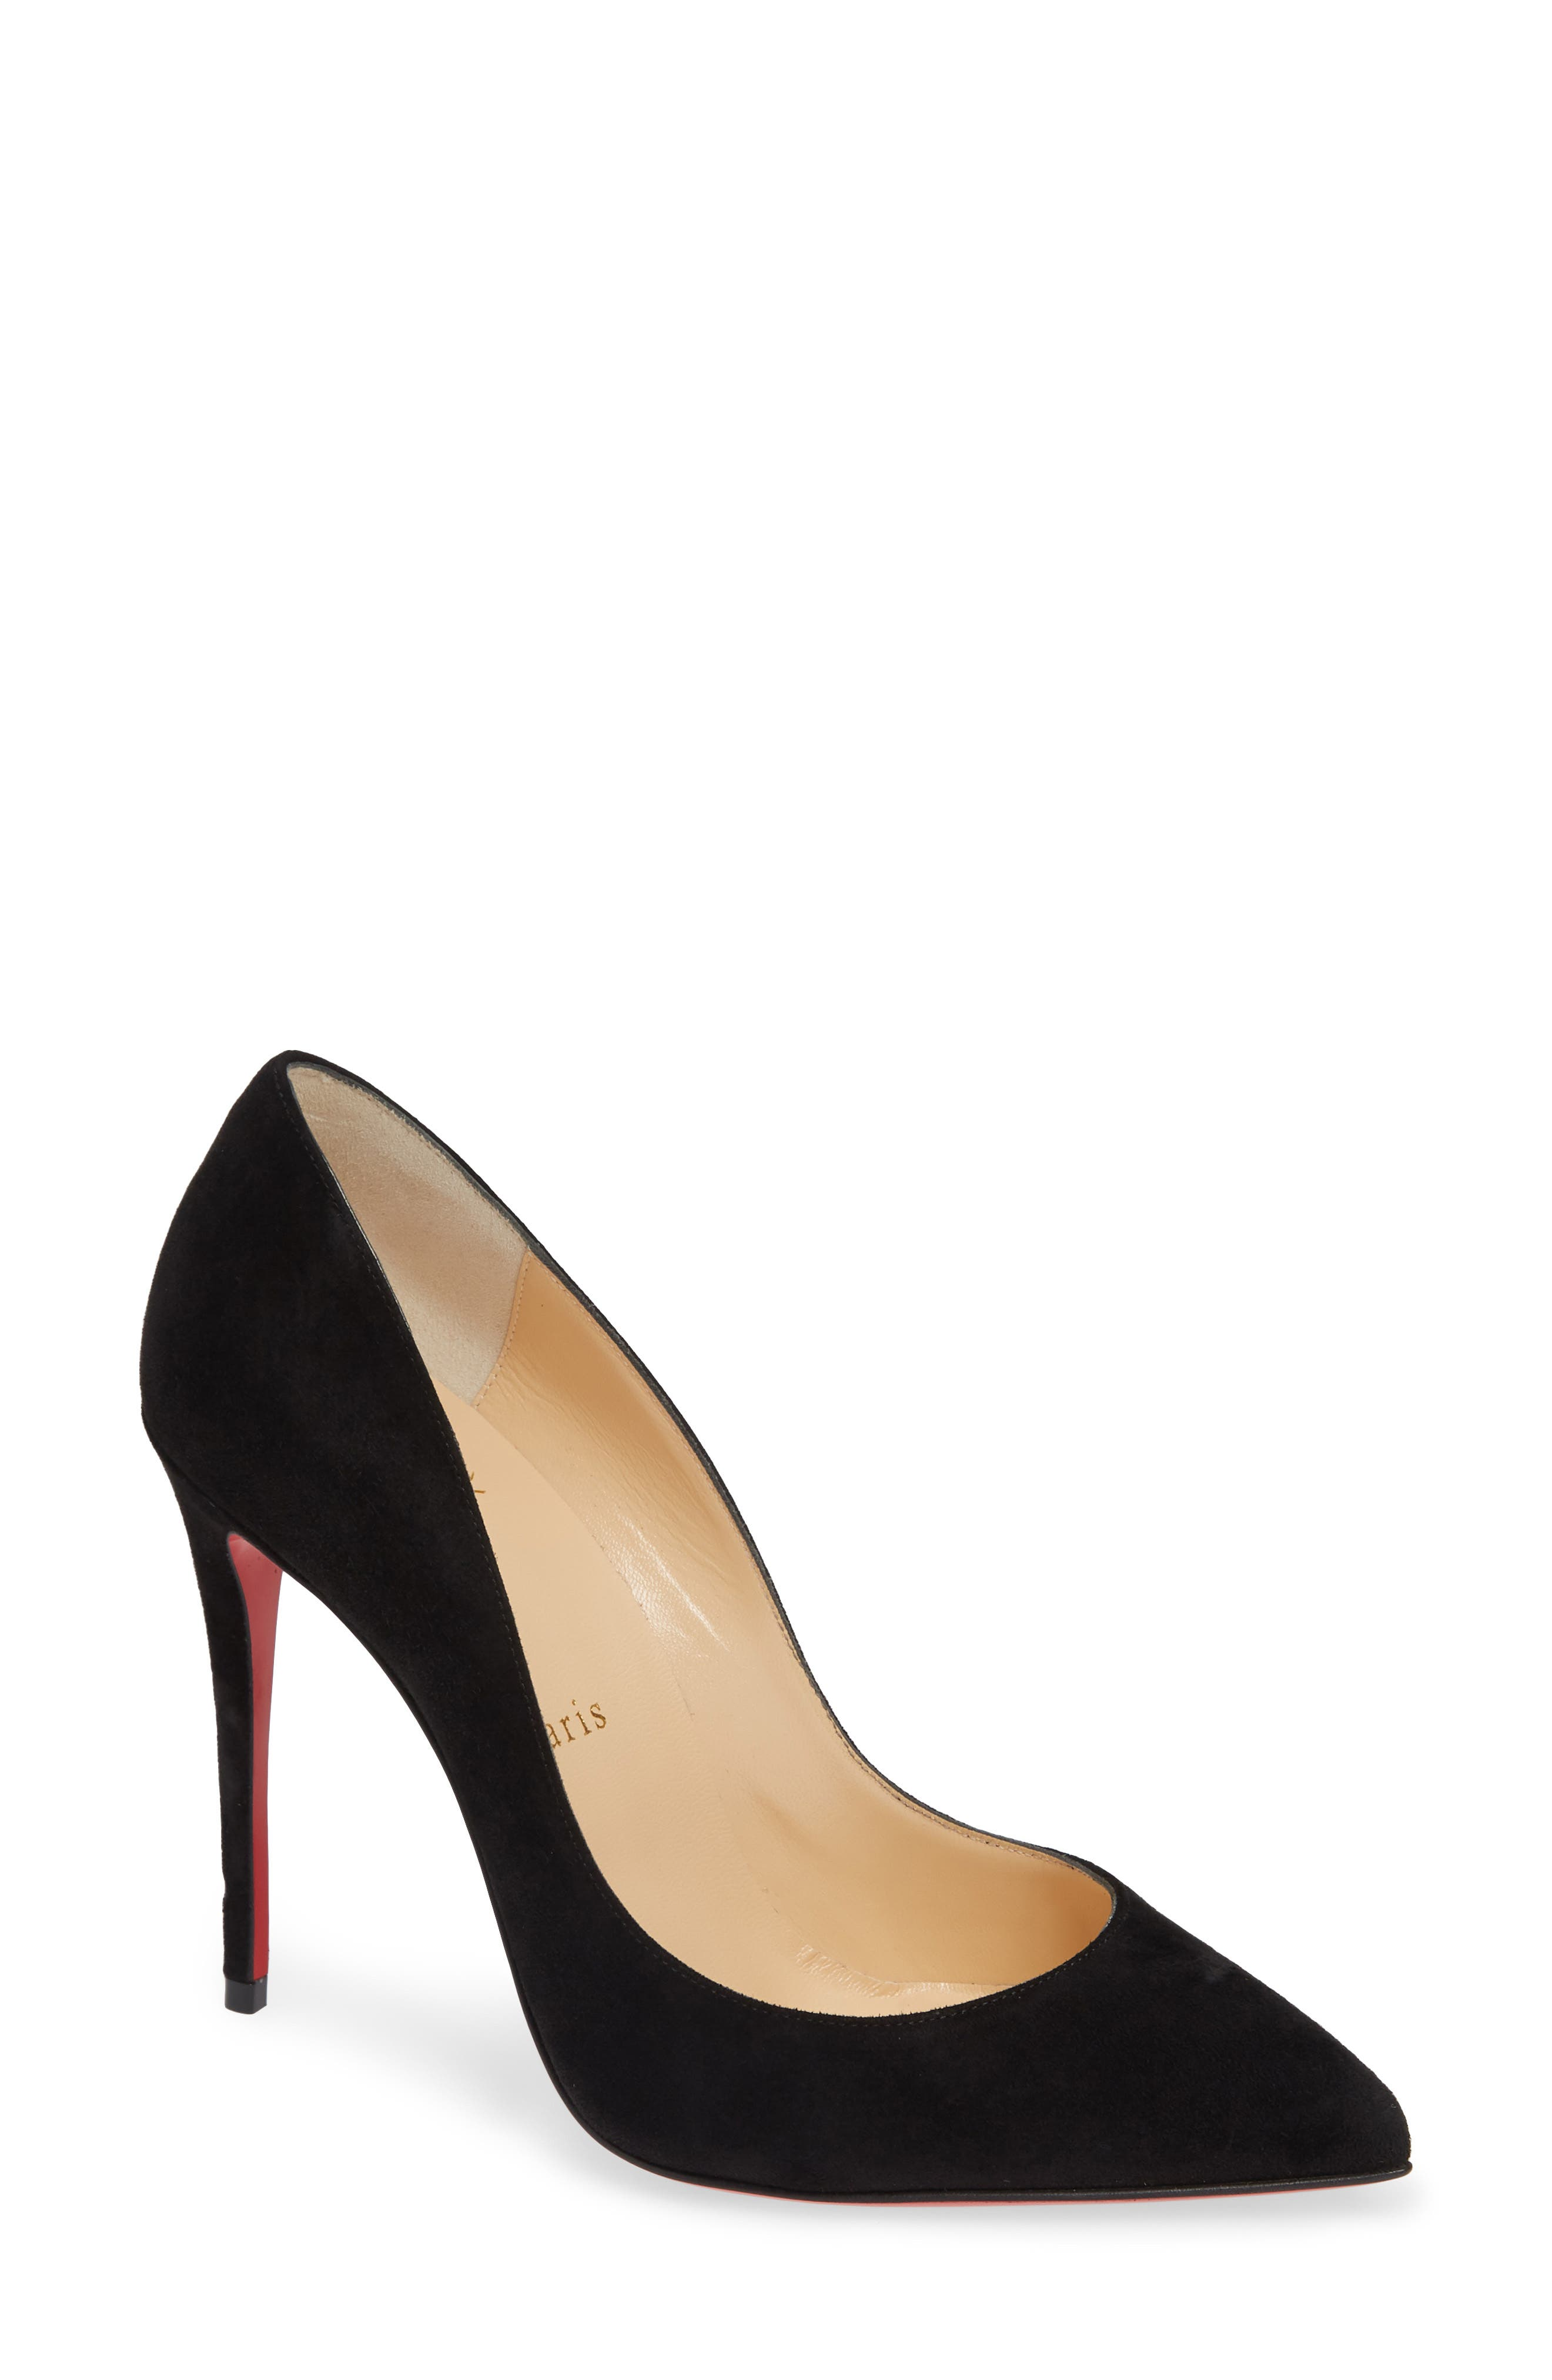 Pigalle Follies Pointy Toe Pump,                             Main thumbnail 1, color,                             BLACK SUEDE